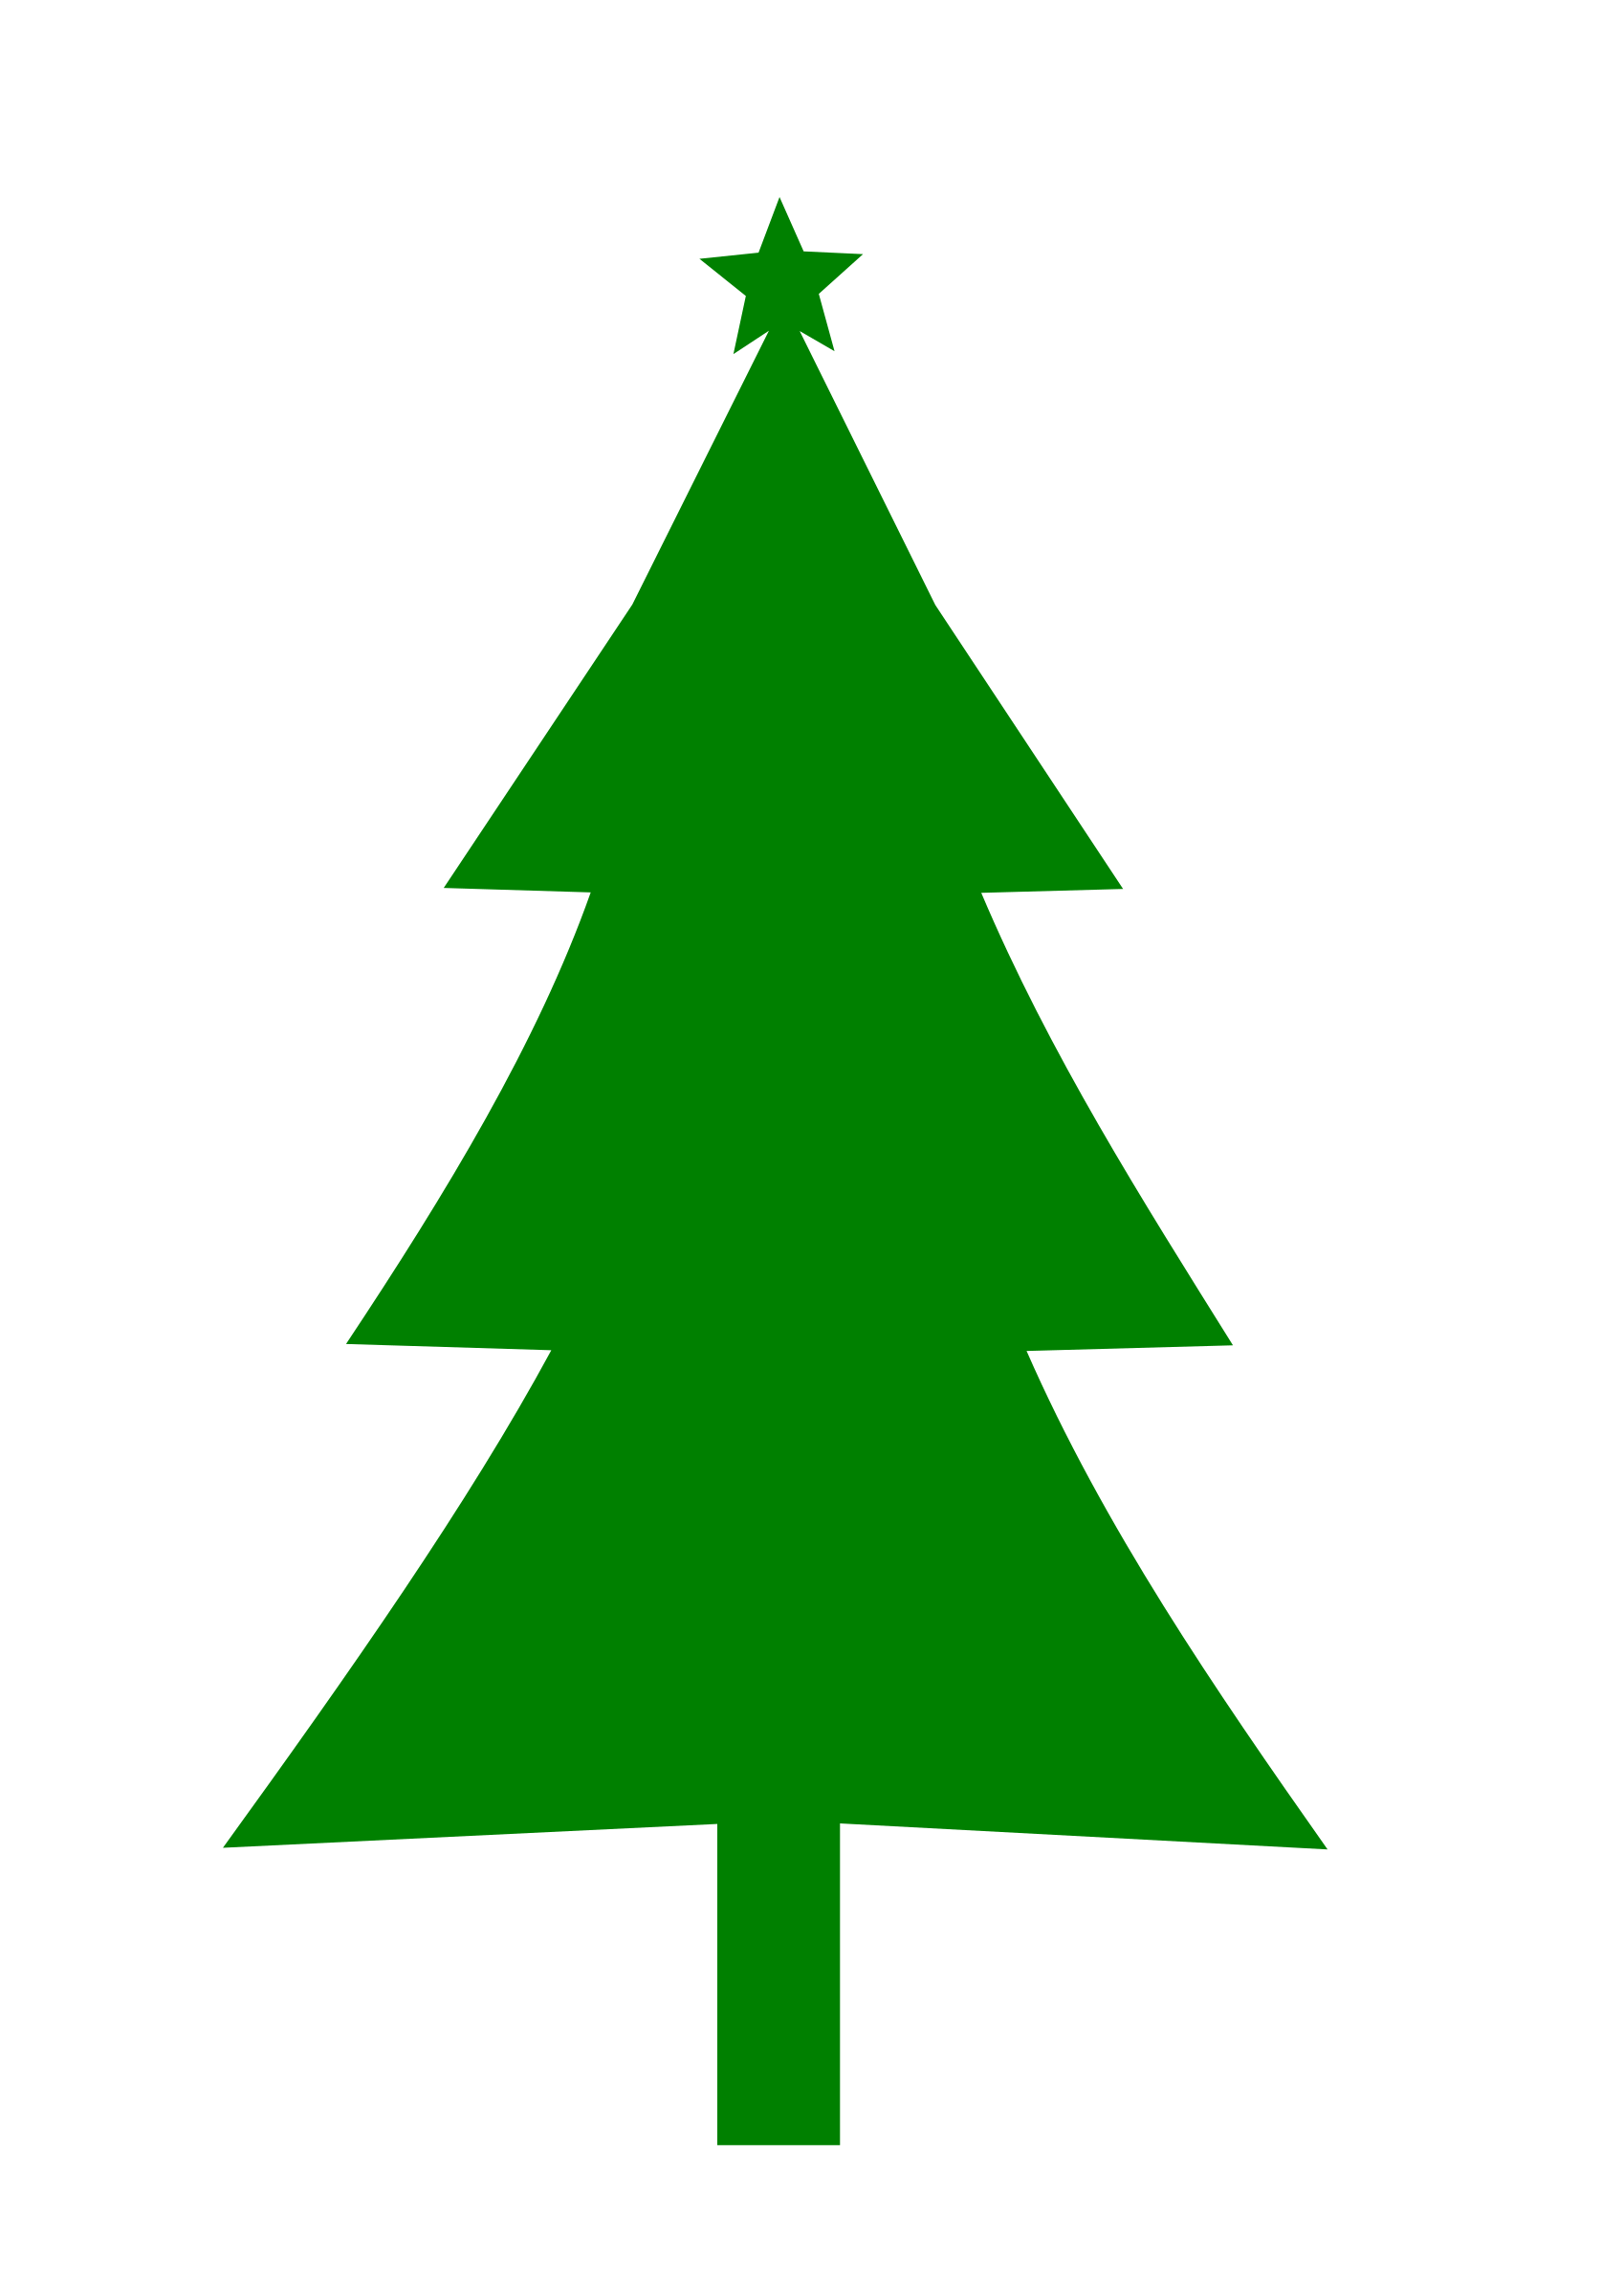 Pine tree clipart silhouette free download Christmas Trees Silhouette at GetDrawings.com | Free for personal ... free download